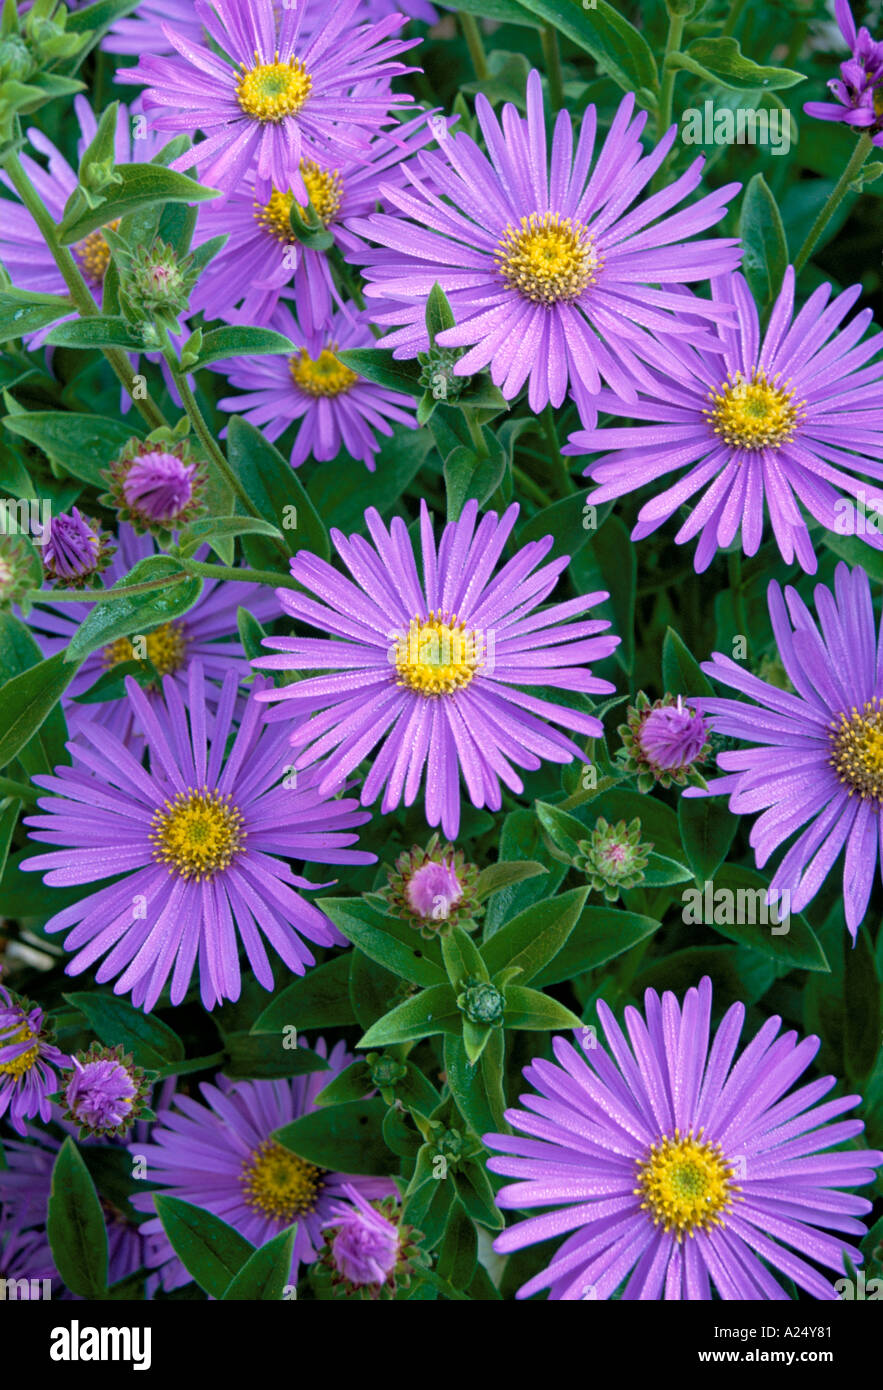 Aster x frikartii stock photos aster x frikartii stock images alamy aster x frikartii monch michaelmas daisy flower stock image izmirmasajfo Image collections